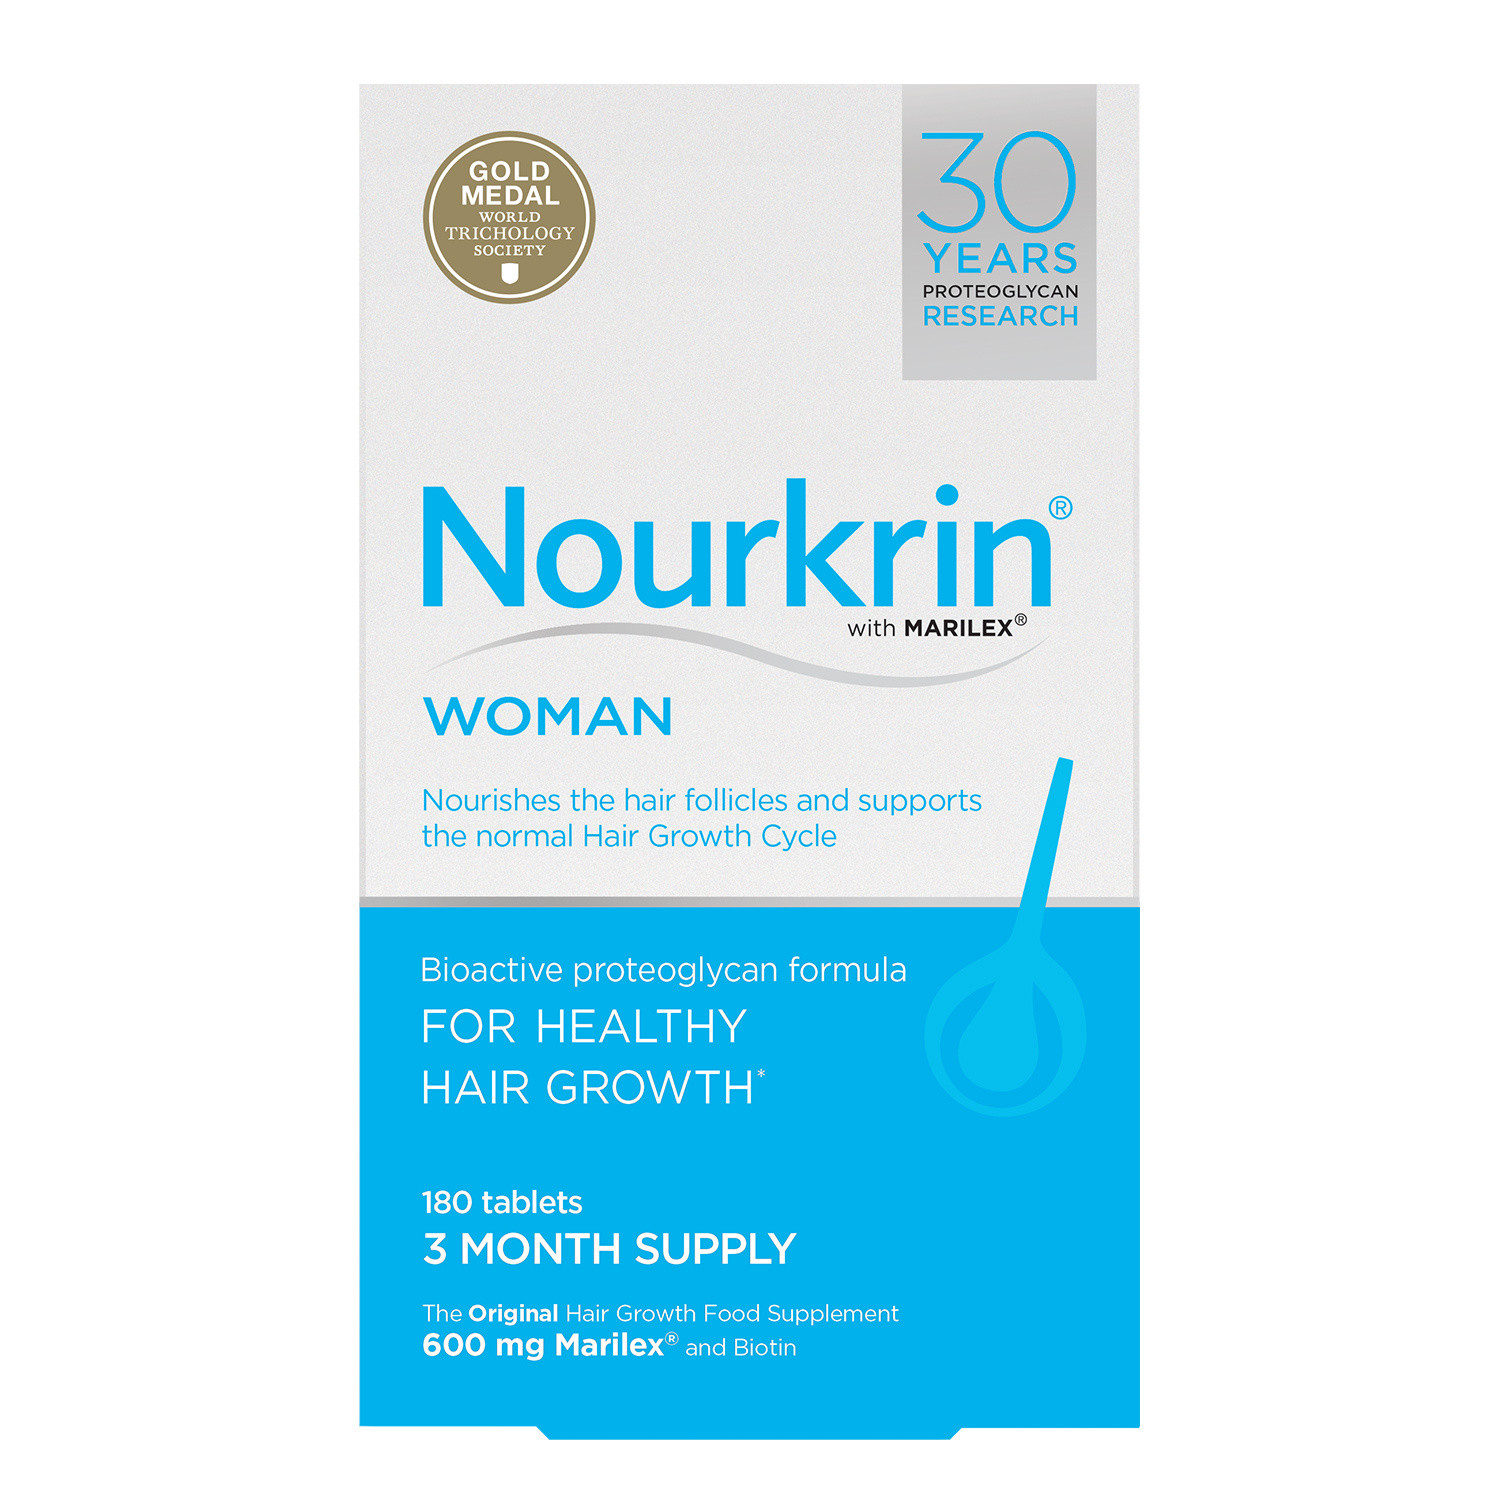 Nourkrin Woman 3 Month Supply